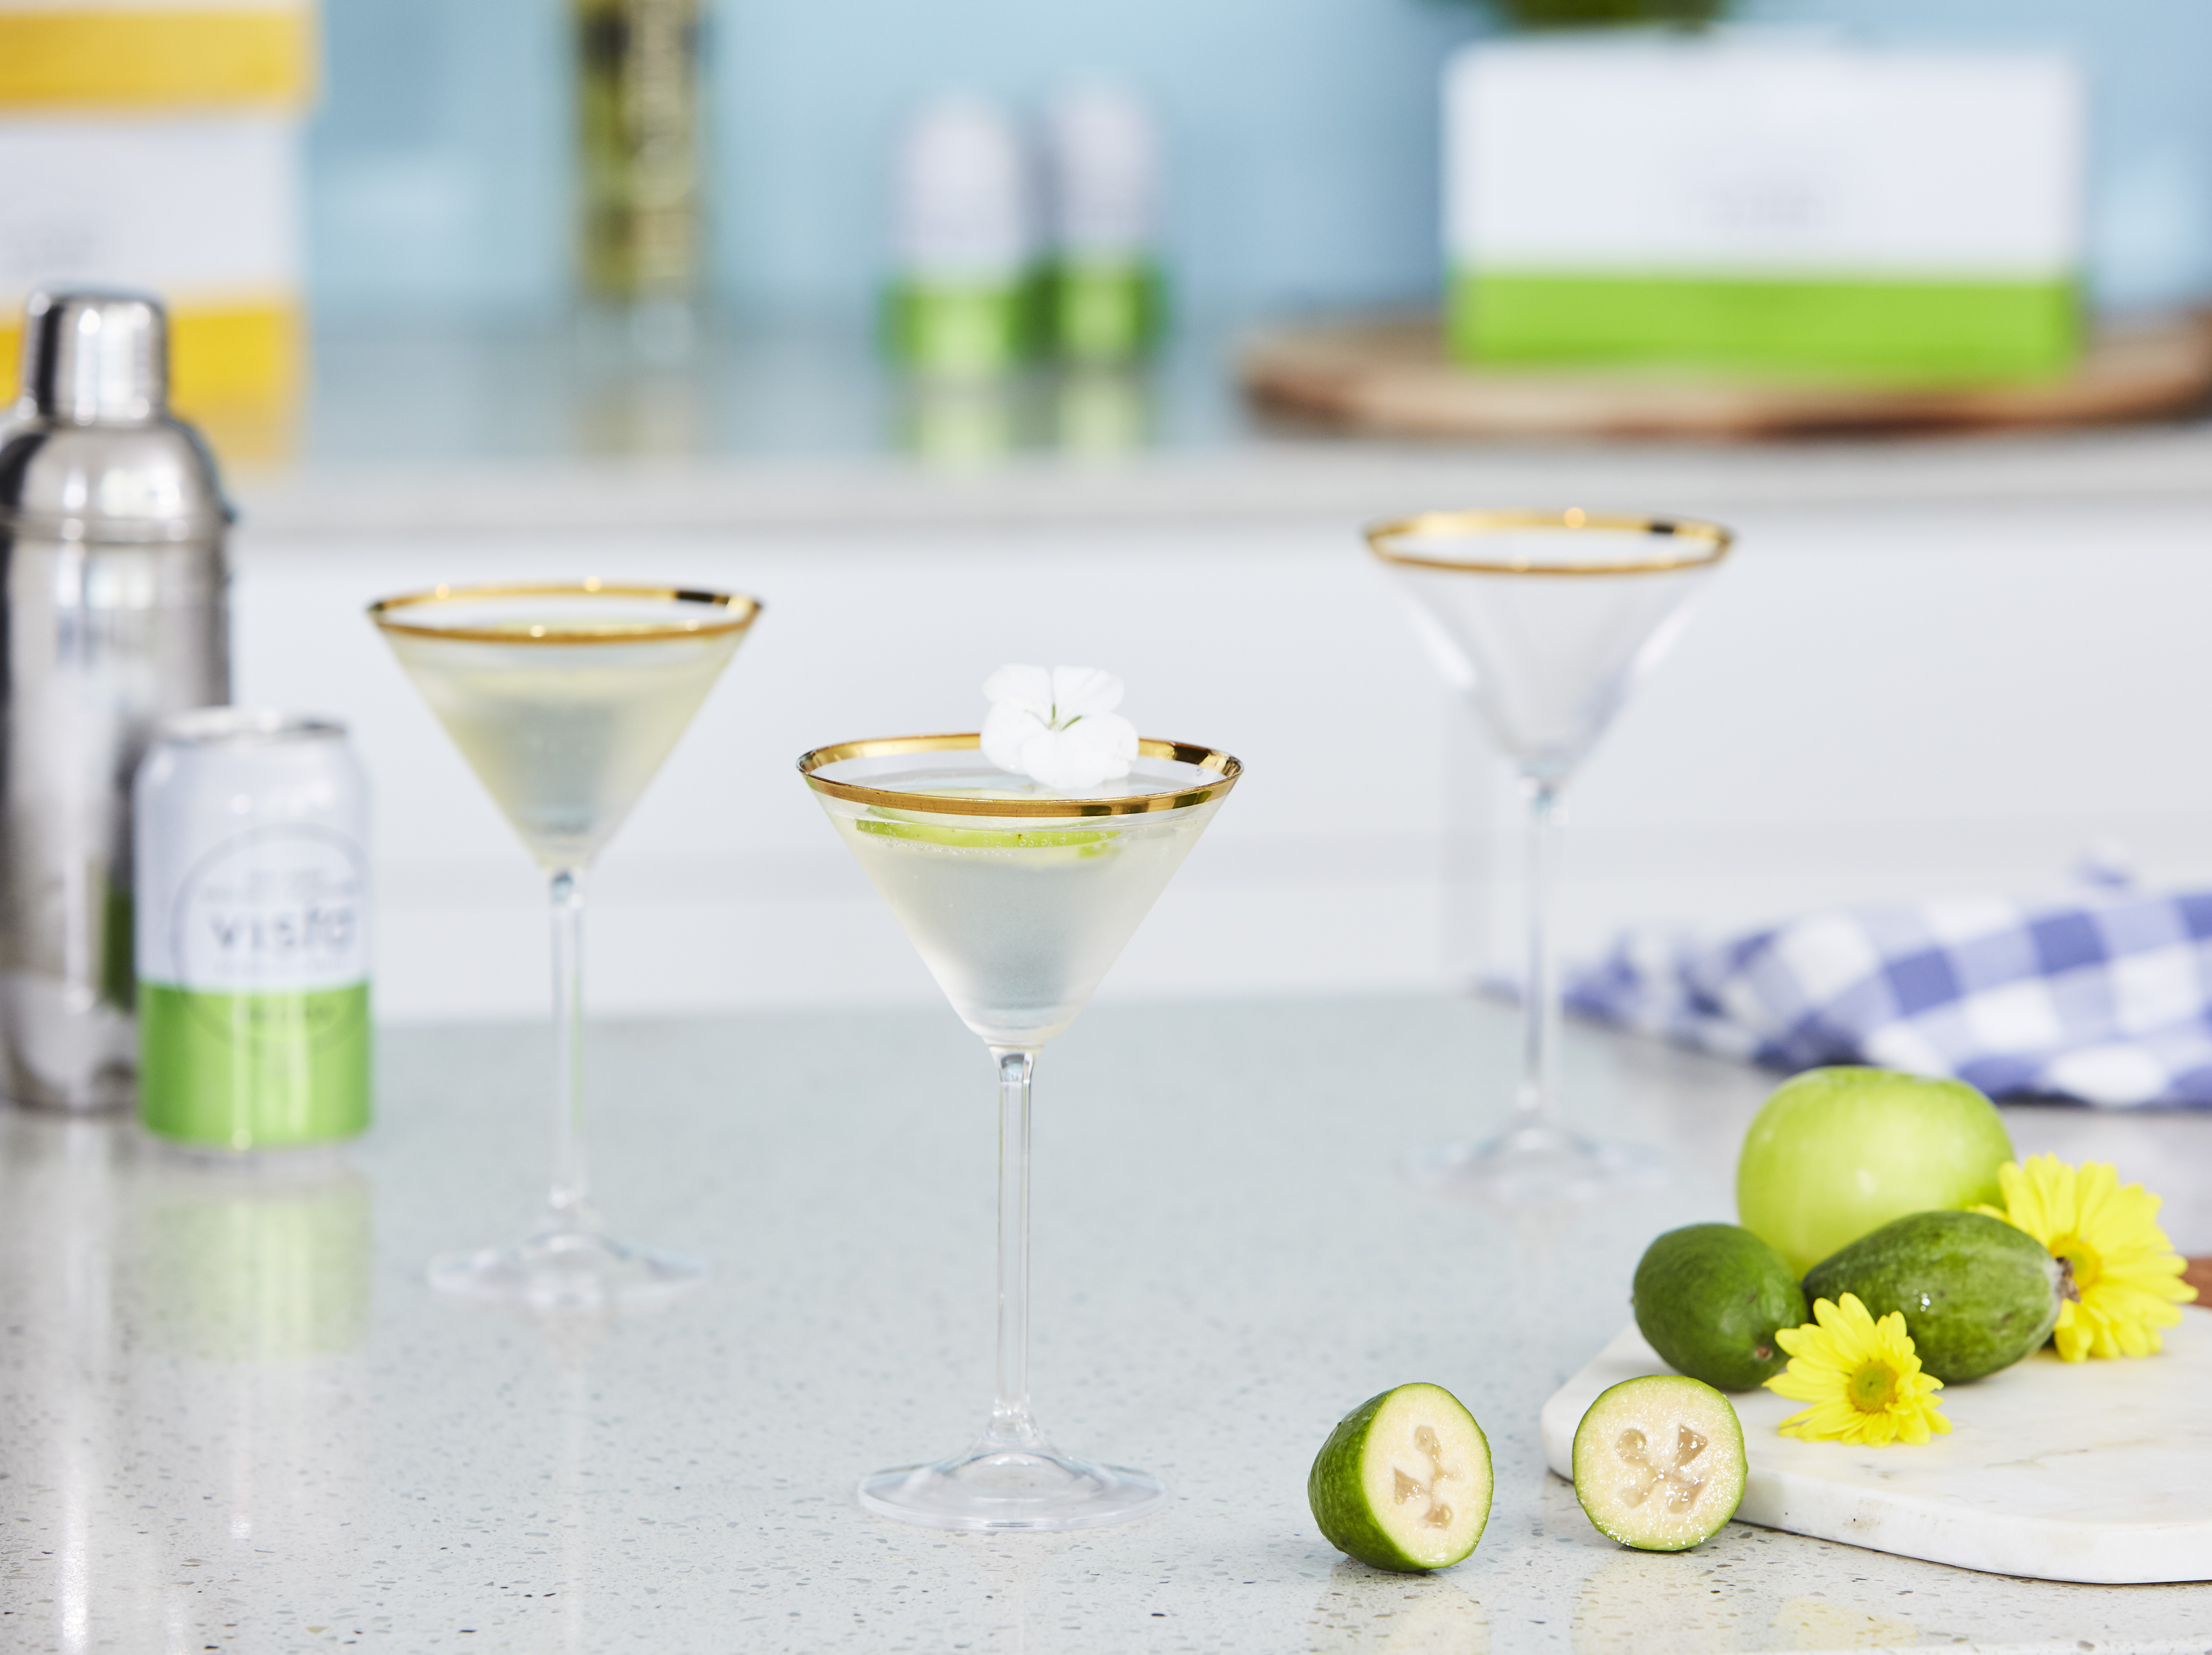 Feijoa & elderflower cocktail by Vista